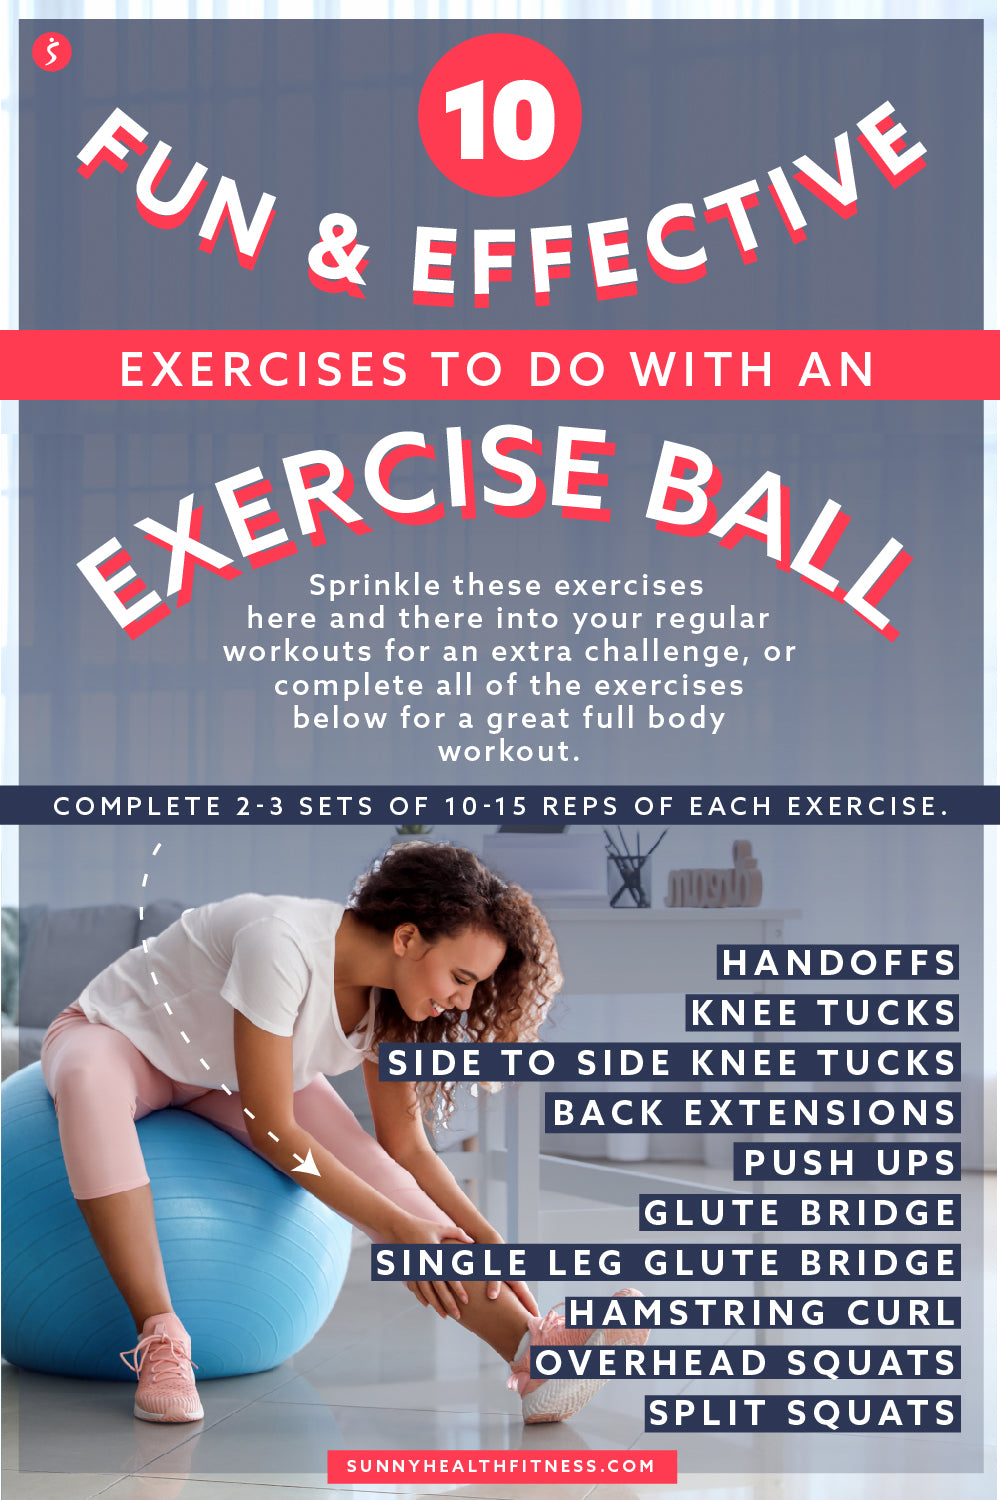 Exercise Ball Workout Infographic